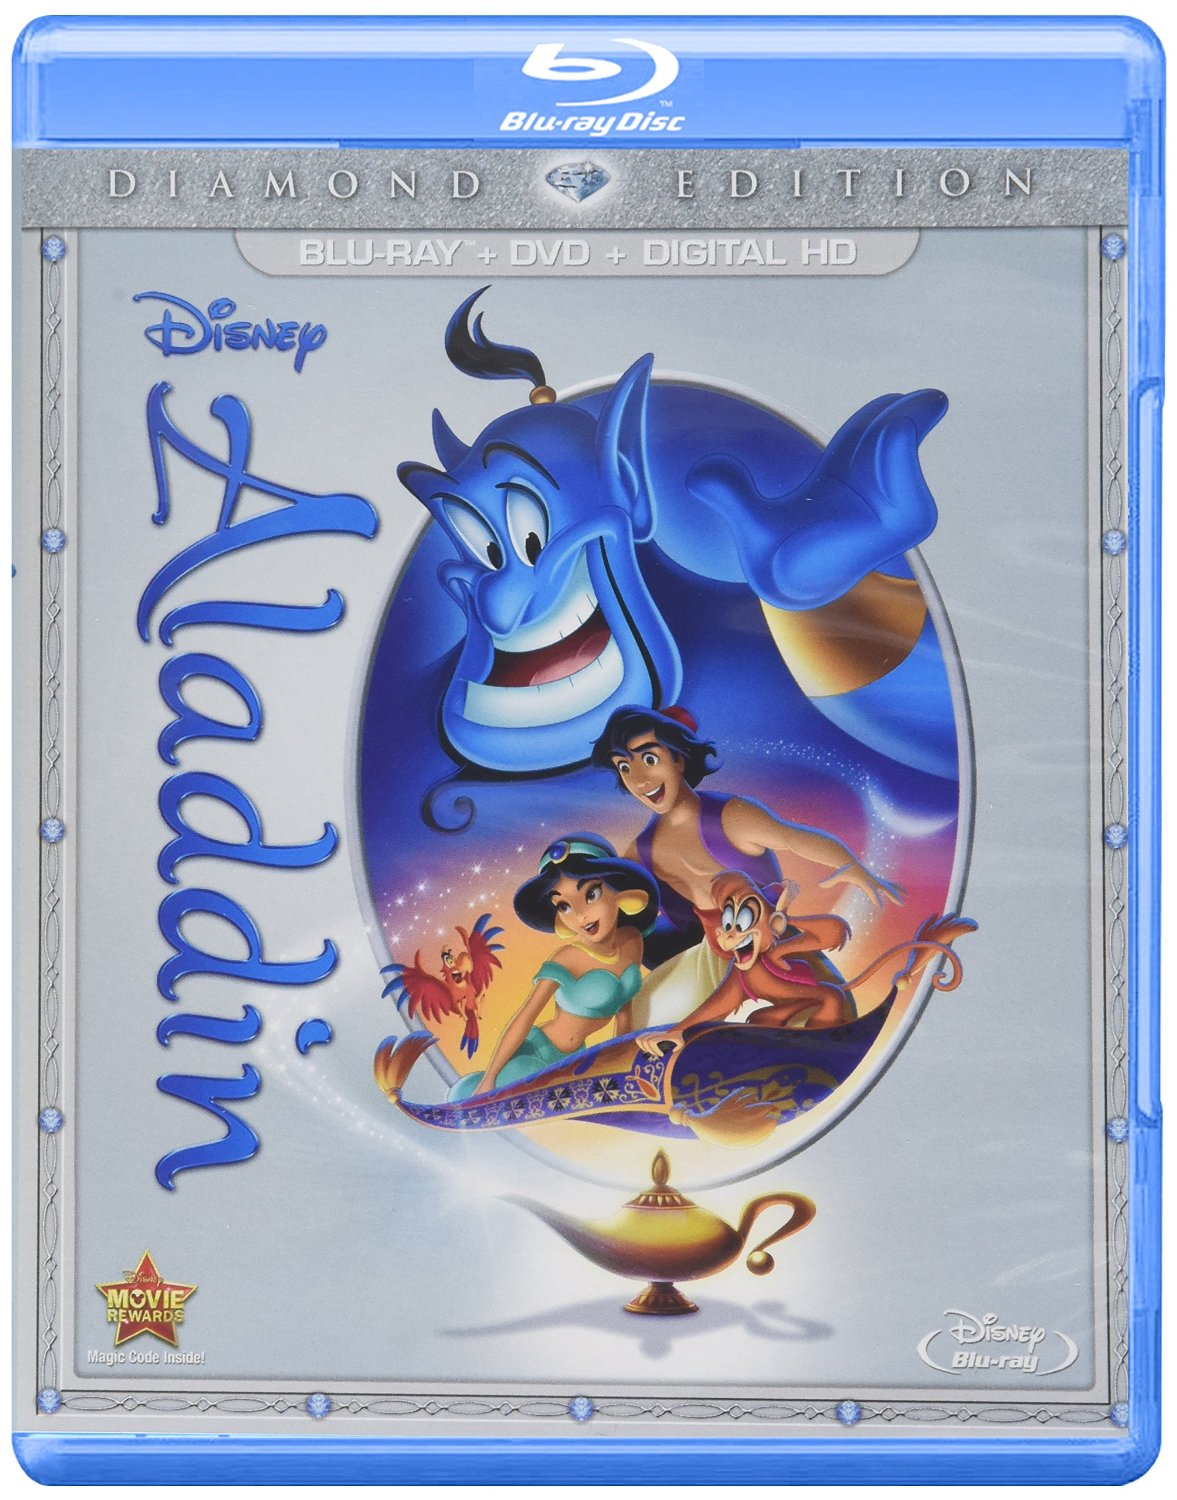 Walt Disney's Aladdin (1992) with the voice talents of Robin Williams, Gilbert Gottfried